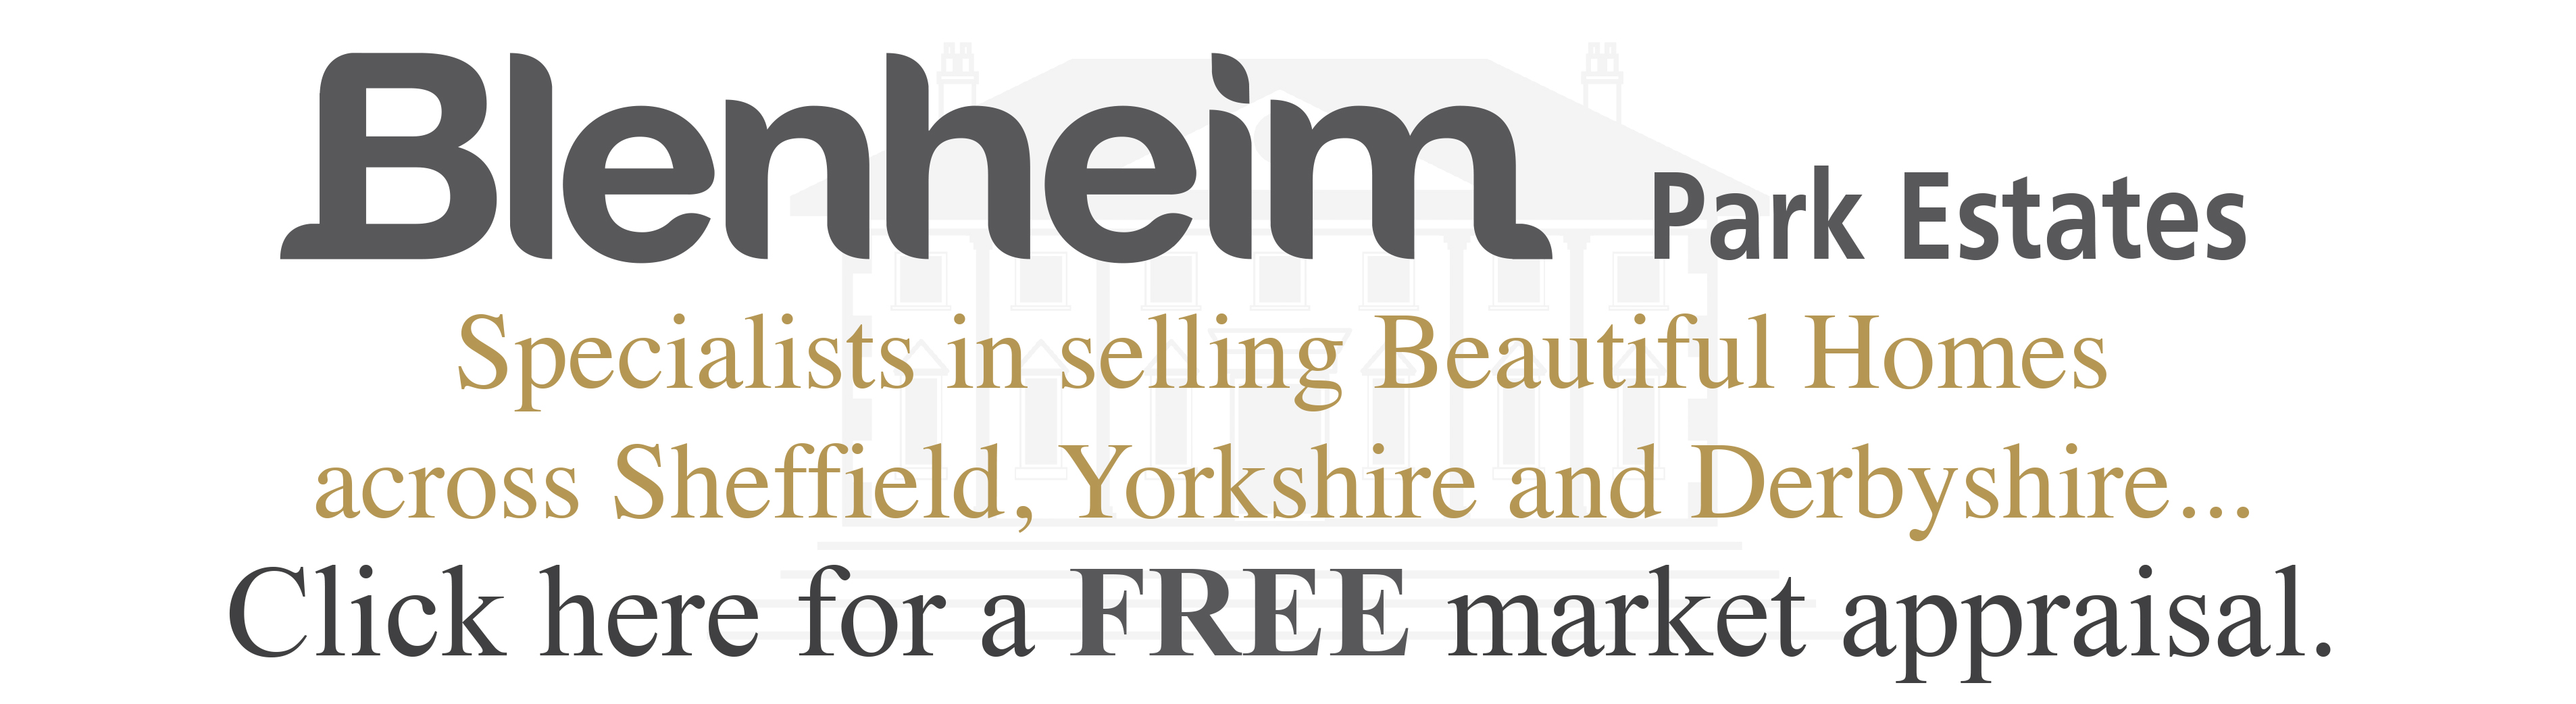 25/7/17 - 25/7/19 12 month blenheim